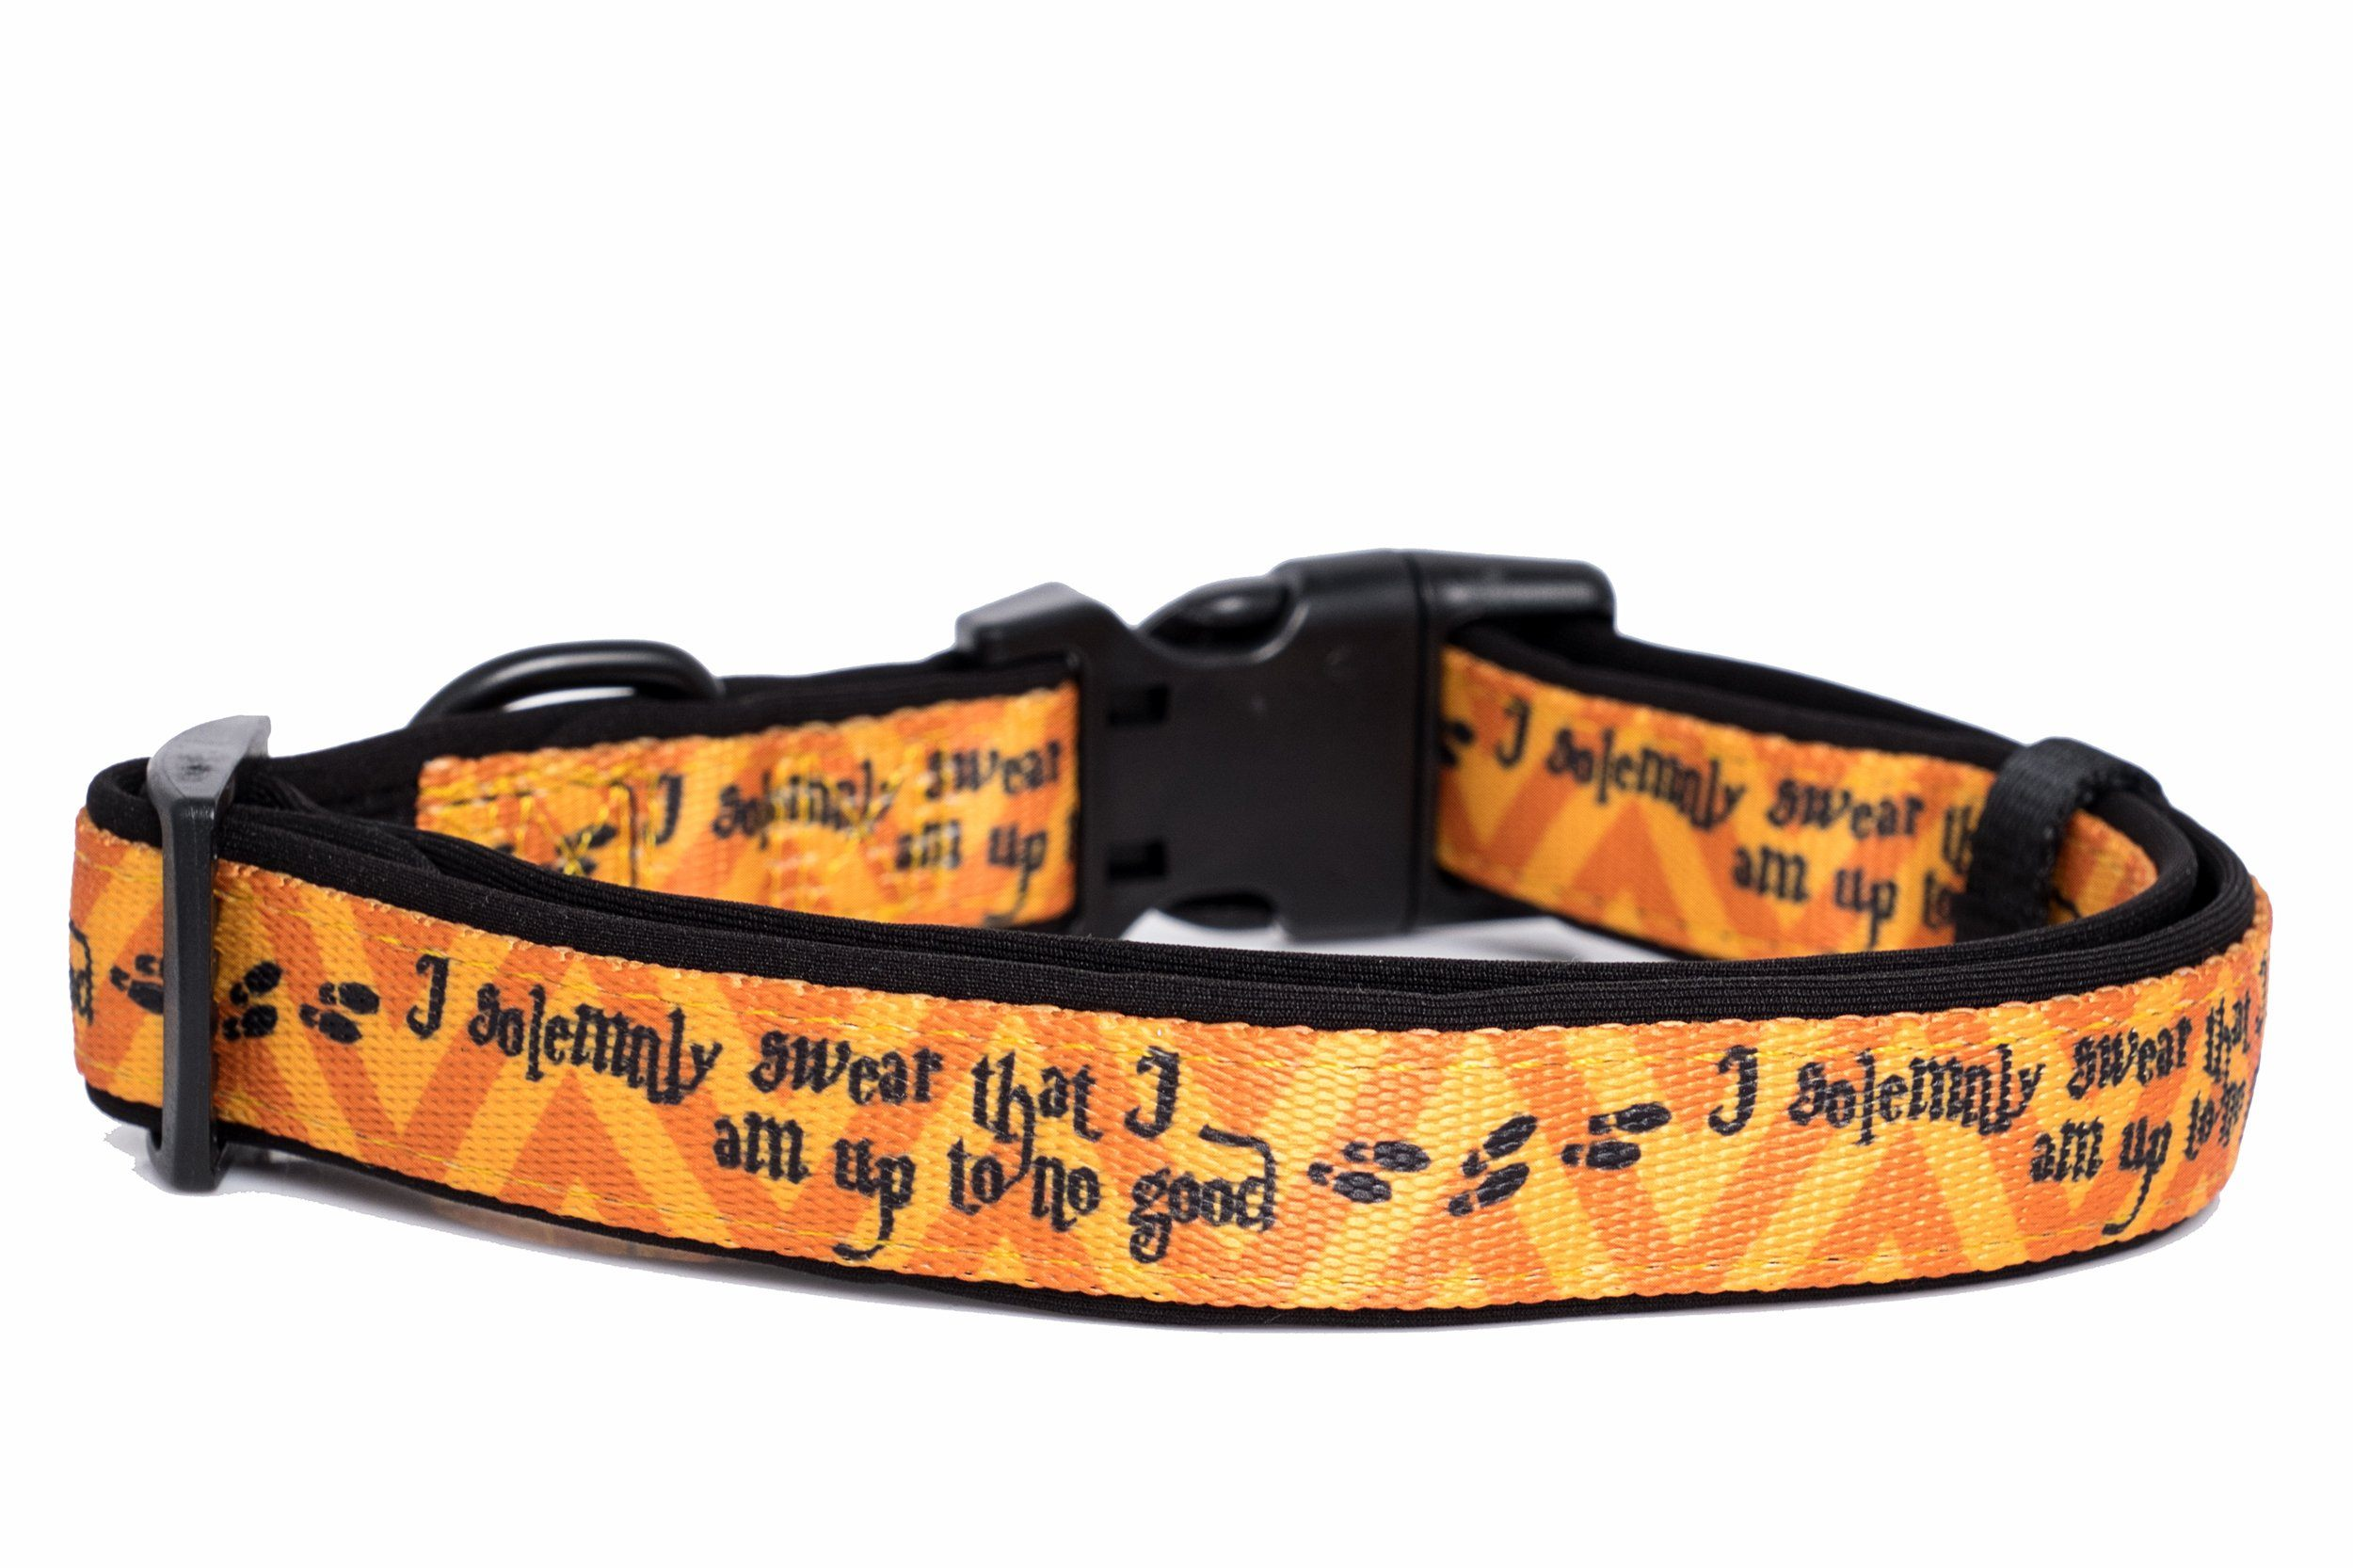 Harry Potter Dog Collar (Neoprene)-Dog Collar-Dizzy Dog Collars-Small 1.5cm Wide-Dizzy Dog Collars